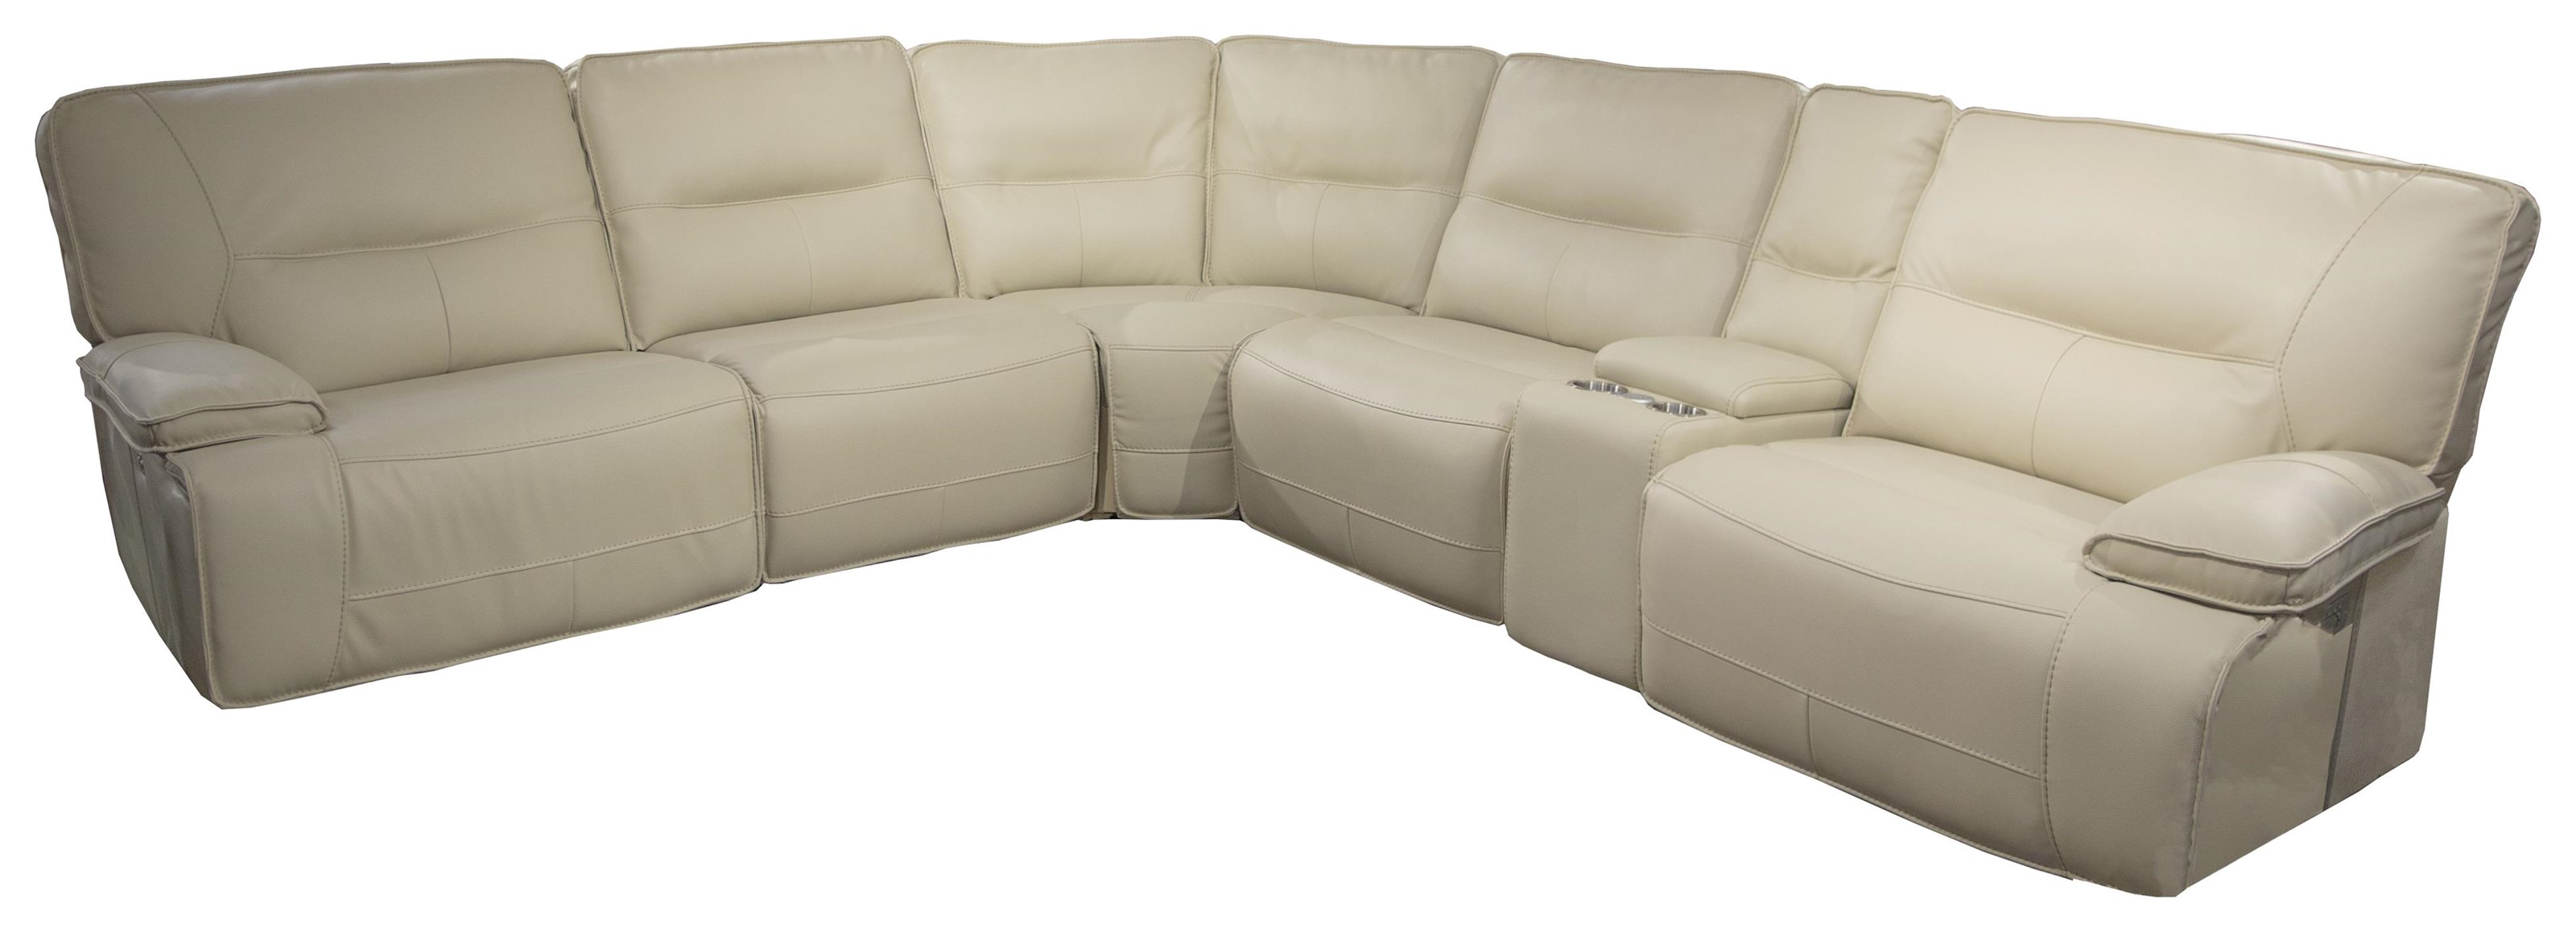 Spartan Spartan Power Sectional Sofa by Parker House at Morris Home